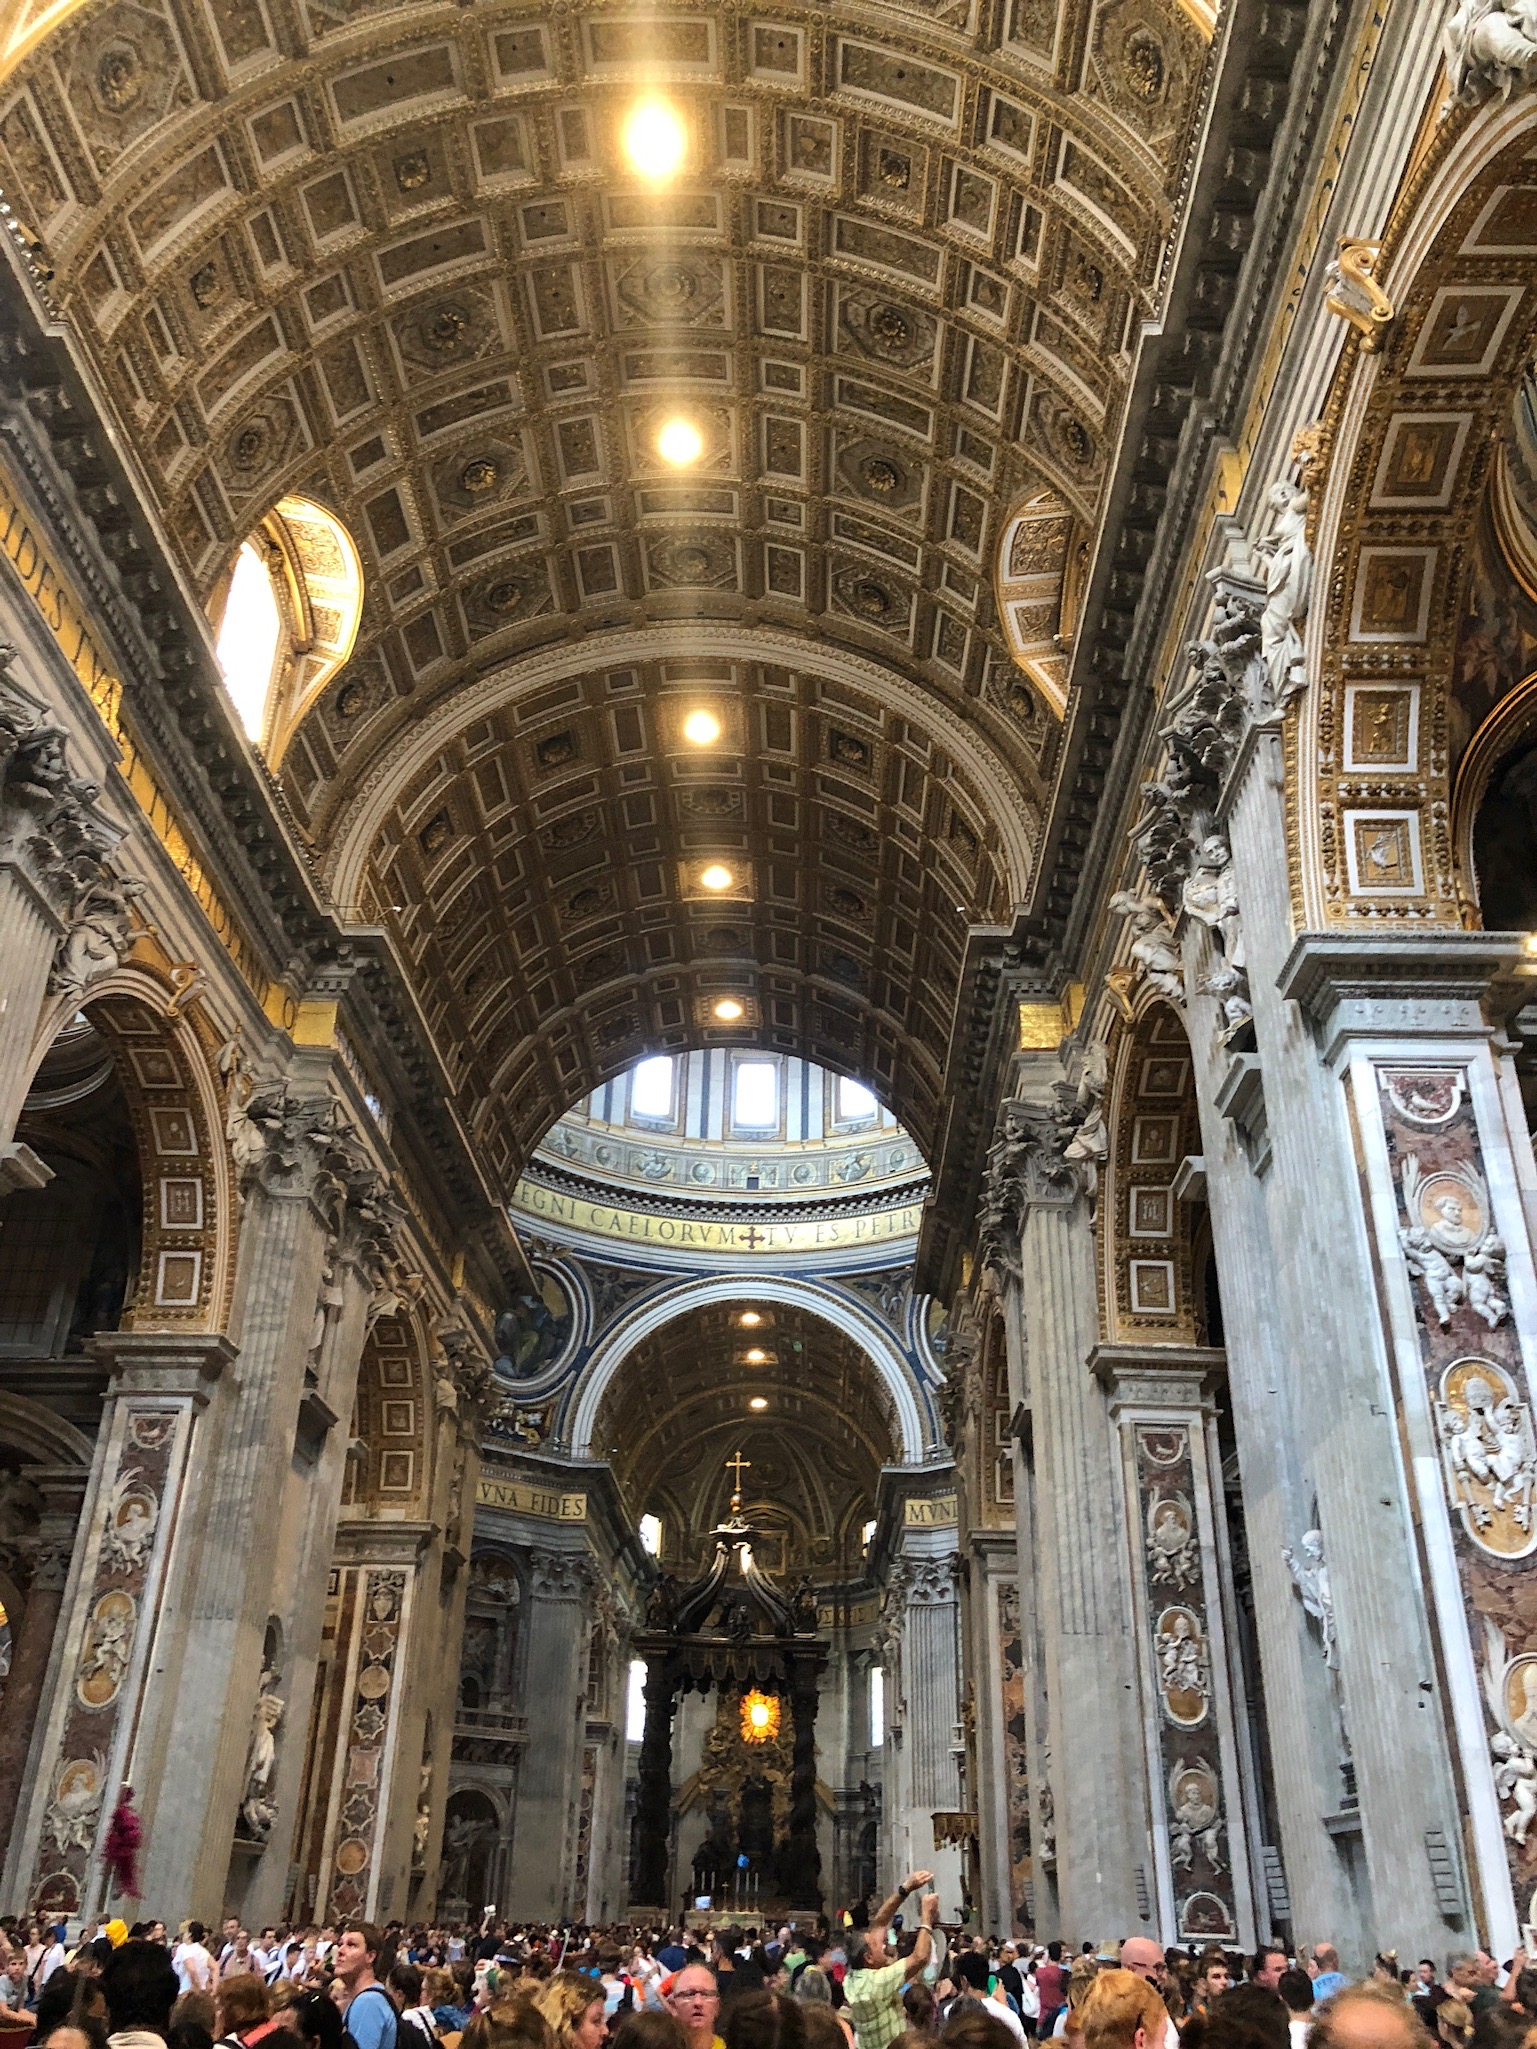 St. Peter is said to be buried below this cathedral named after him where only the Pope can perform mass under the bronze structure in the middle of the cathedral.